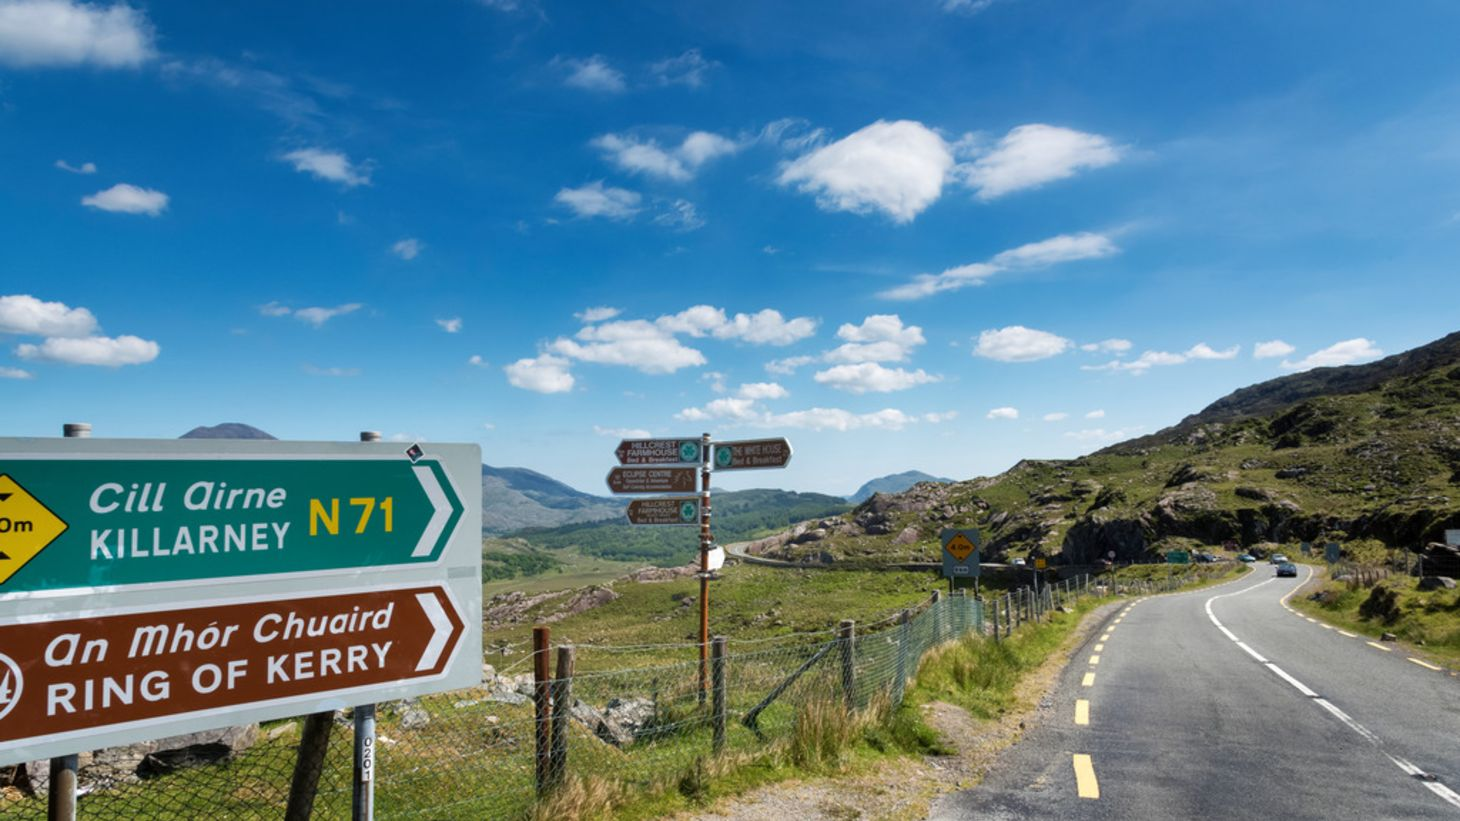 Bring the whole family to witness the wonder of the Ring of Kerry.